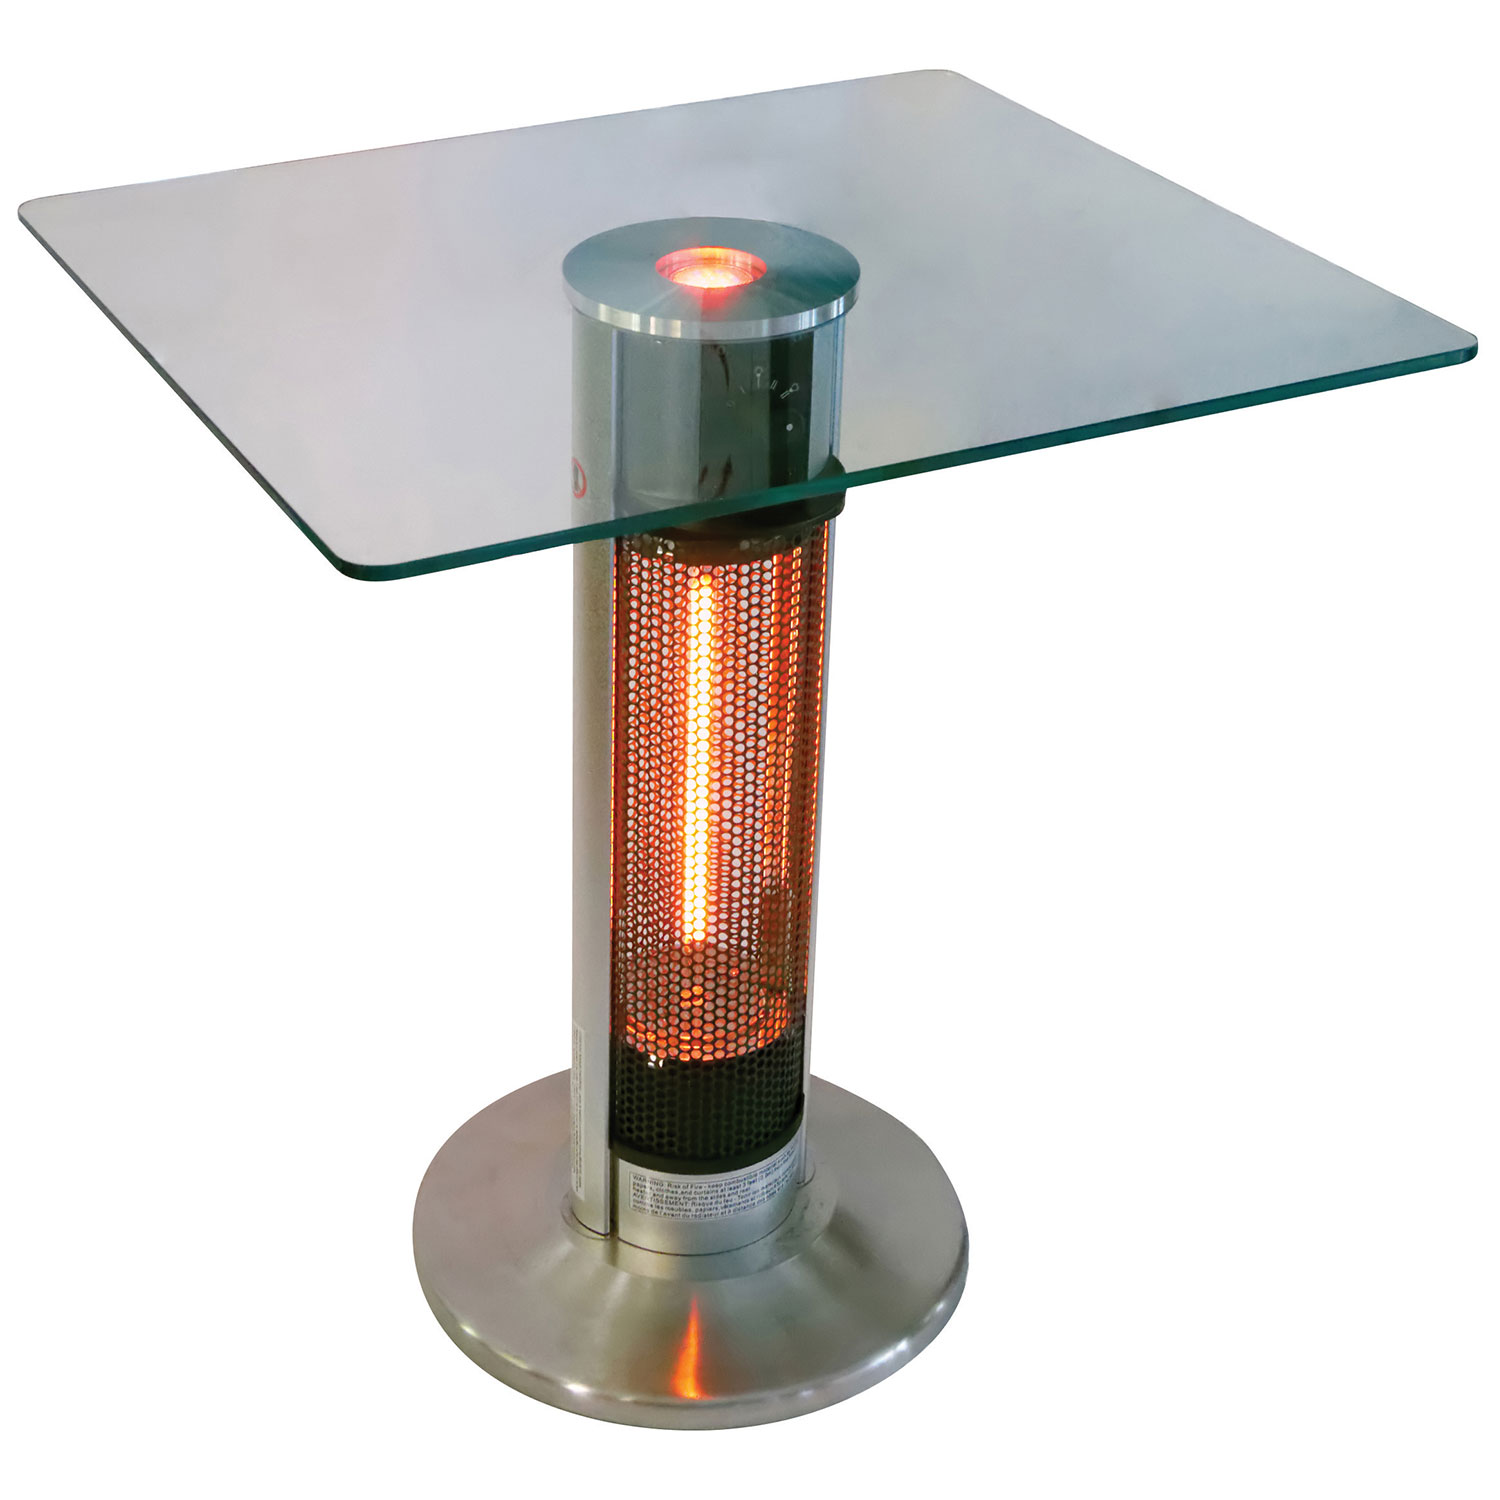 EnerG+ Outdoor Table Infrared Heater   5100 BTU : Patio Heaters   Best Buy  Canada